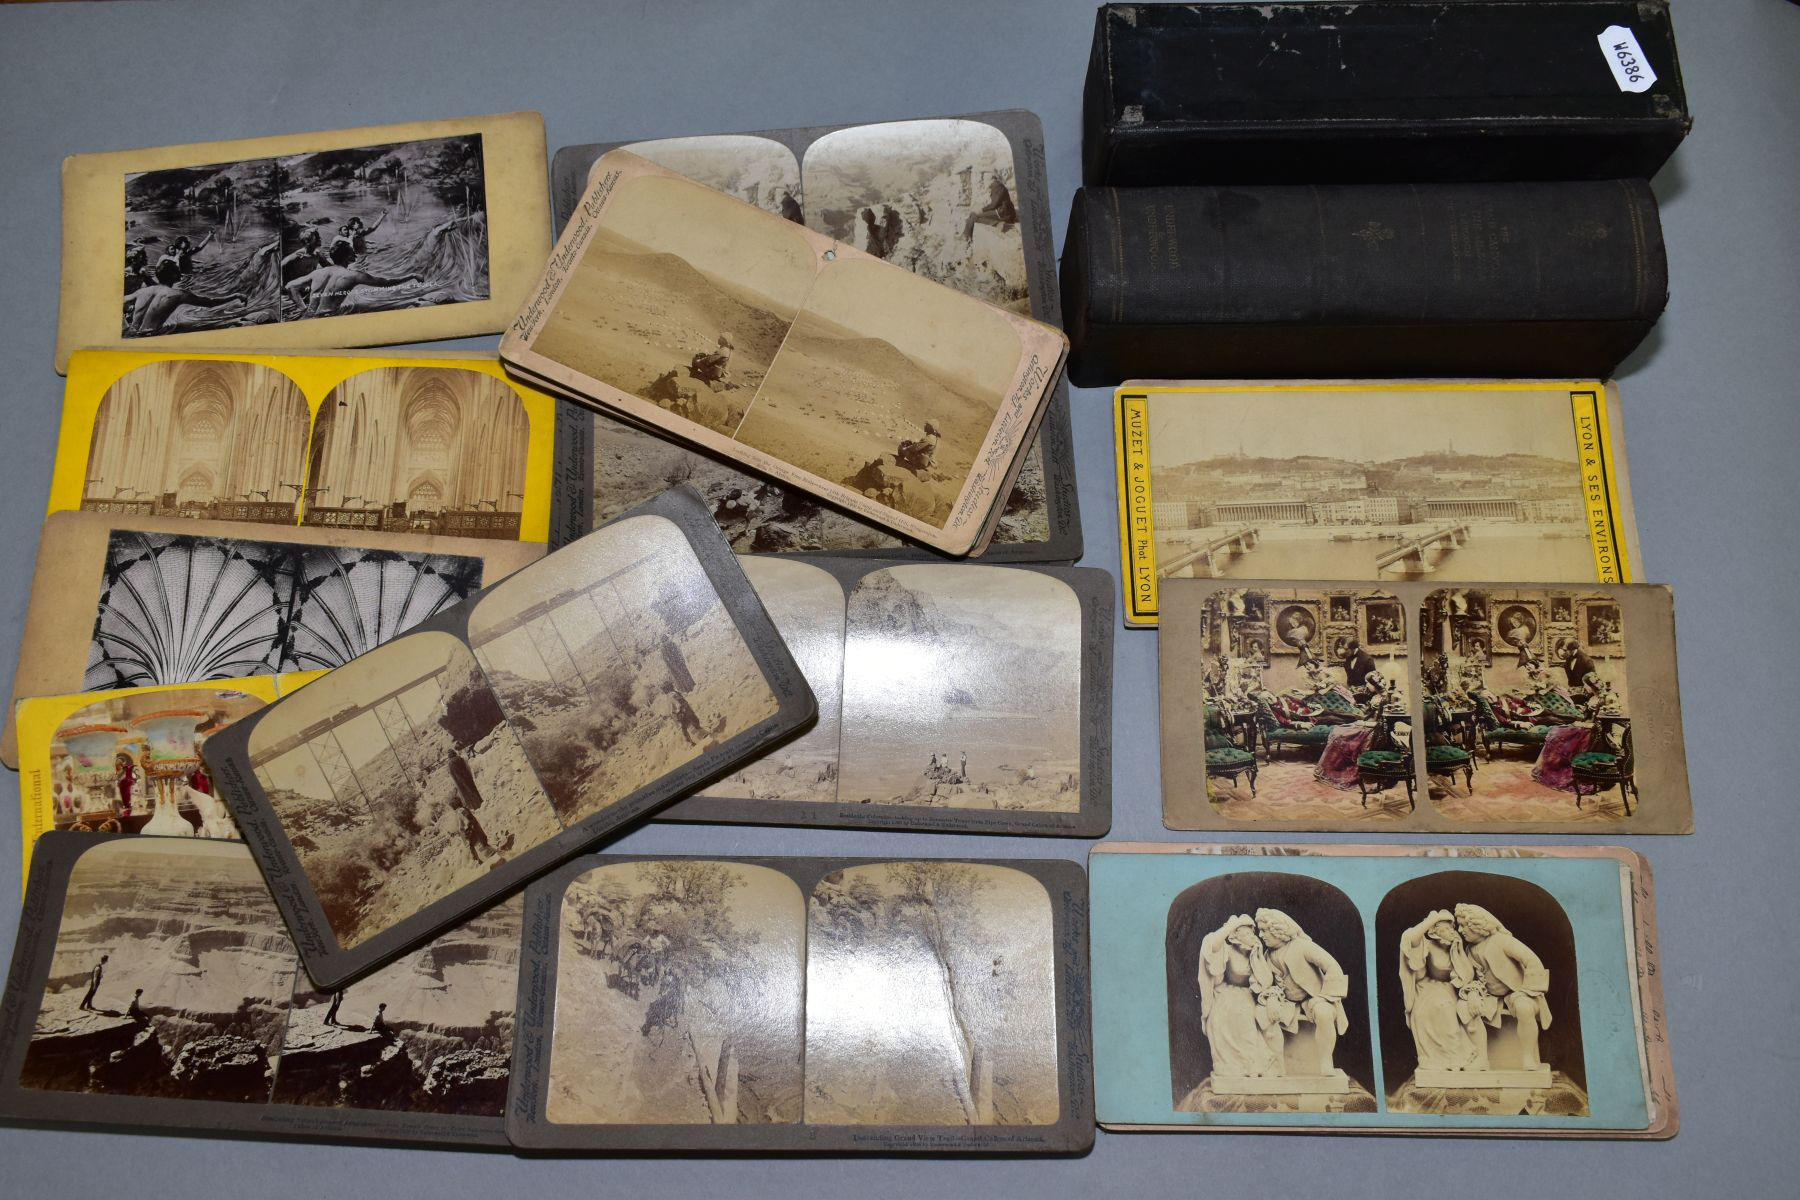 A BOXED SET OF UNDERWOOD & UNDERWOOD STEREOVIEW CARDS, 'The Grand Canyon of the Arizona through